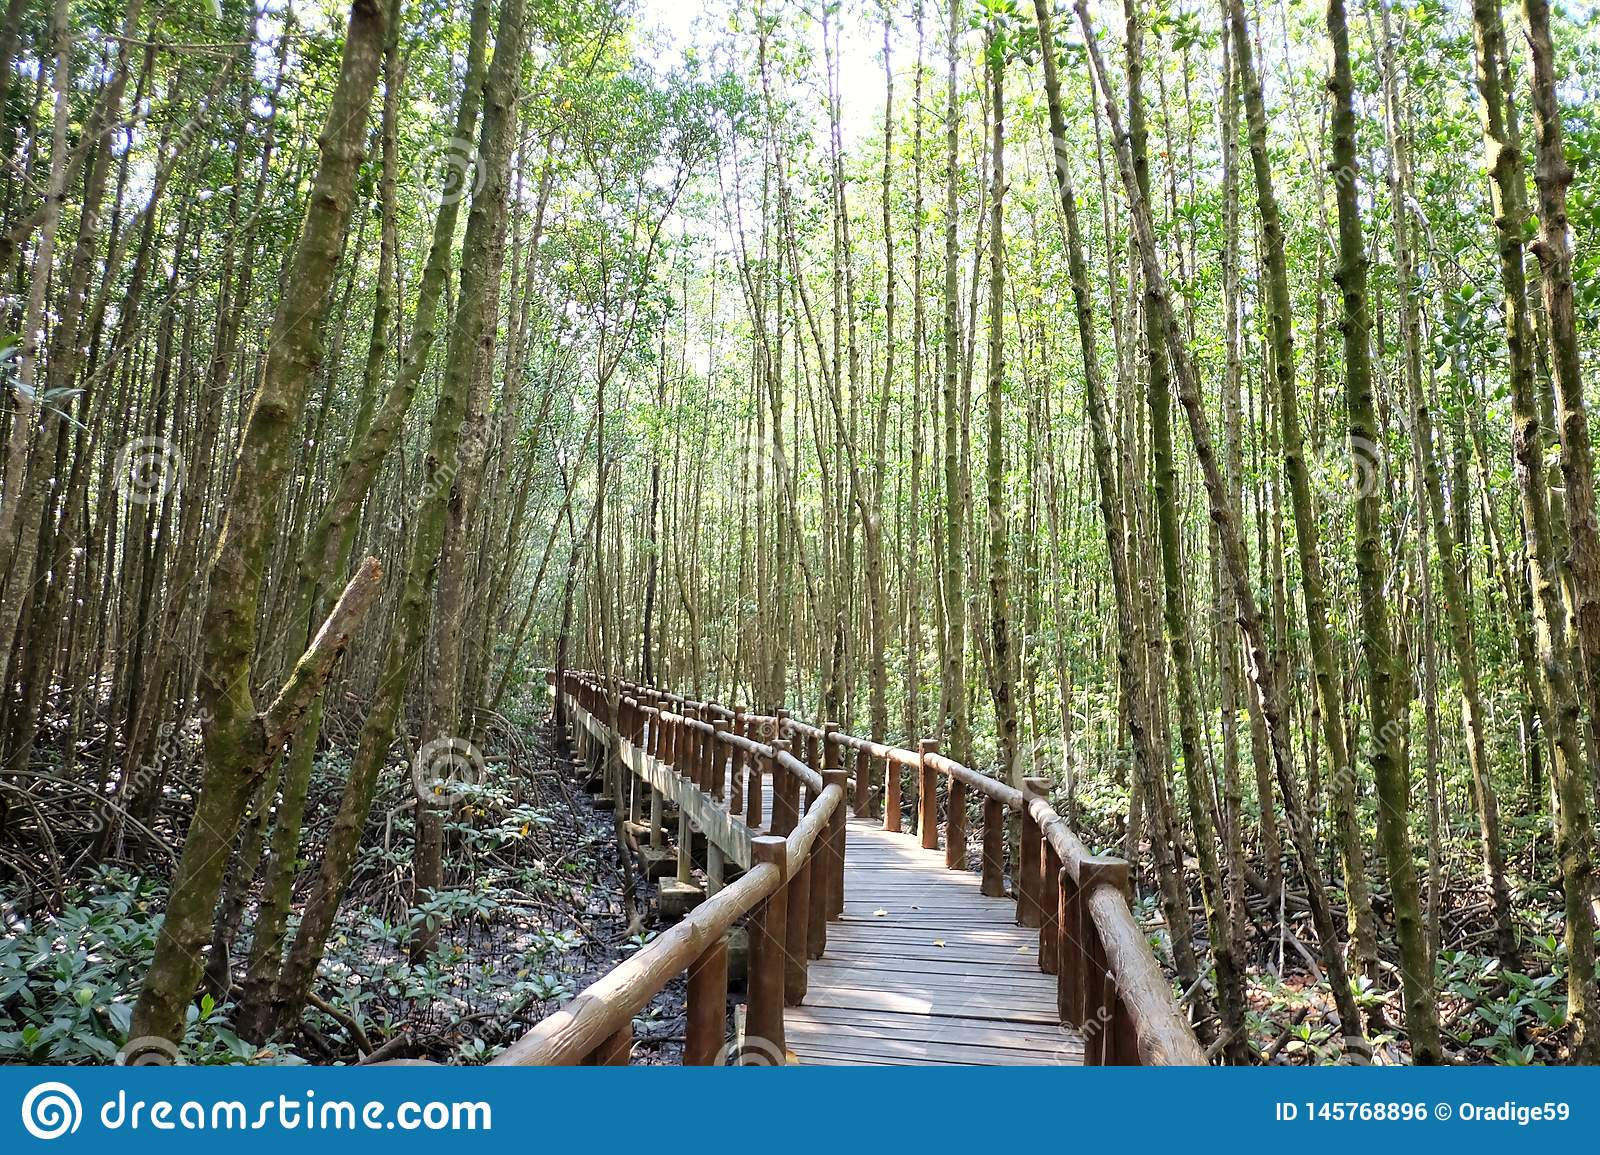 A curved wooden bridge into the mangrove forest with sun light